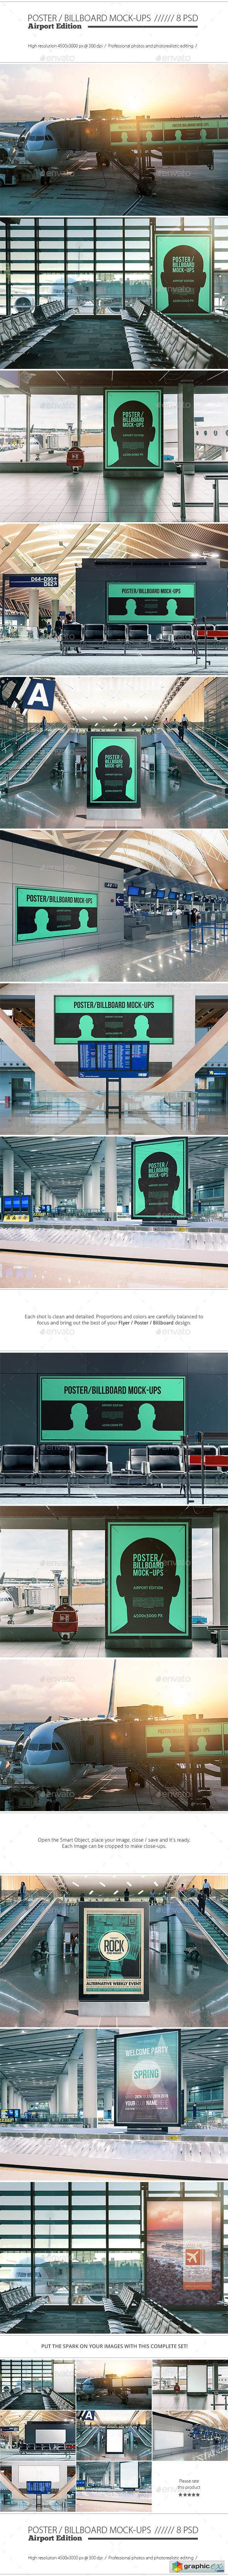 Poster / Billboard Mock-ups - Airport Edition